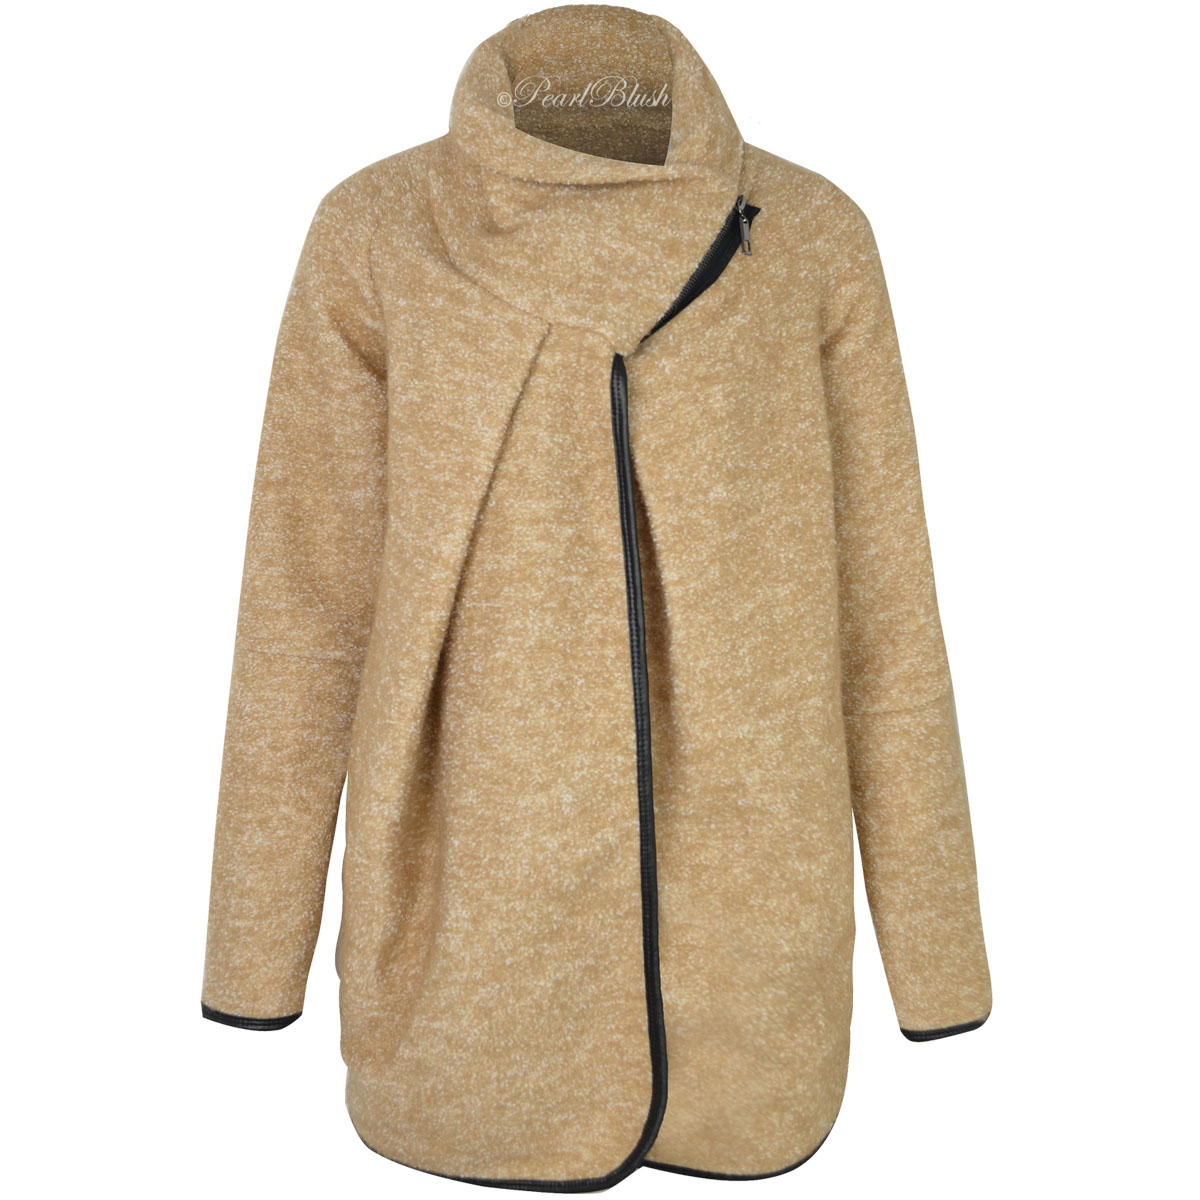 LADIES-WOMENS-OVERSIZED-CARDIGAN-WRAP-BAGGY-TURTLE-NECK- - LADIES WOMENS OVERSIZED CARDIGAN WRAP BAGGY TURTLE NECK JUMPER